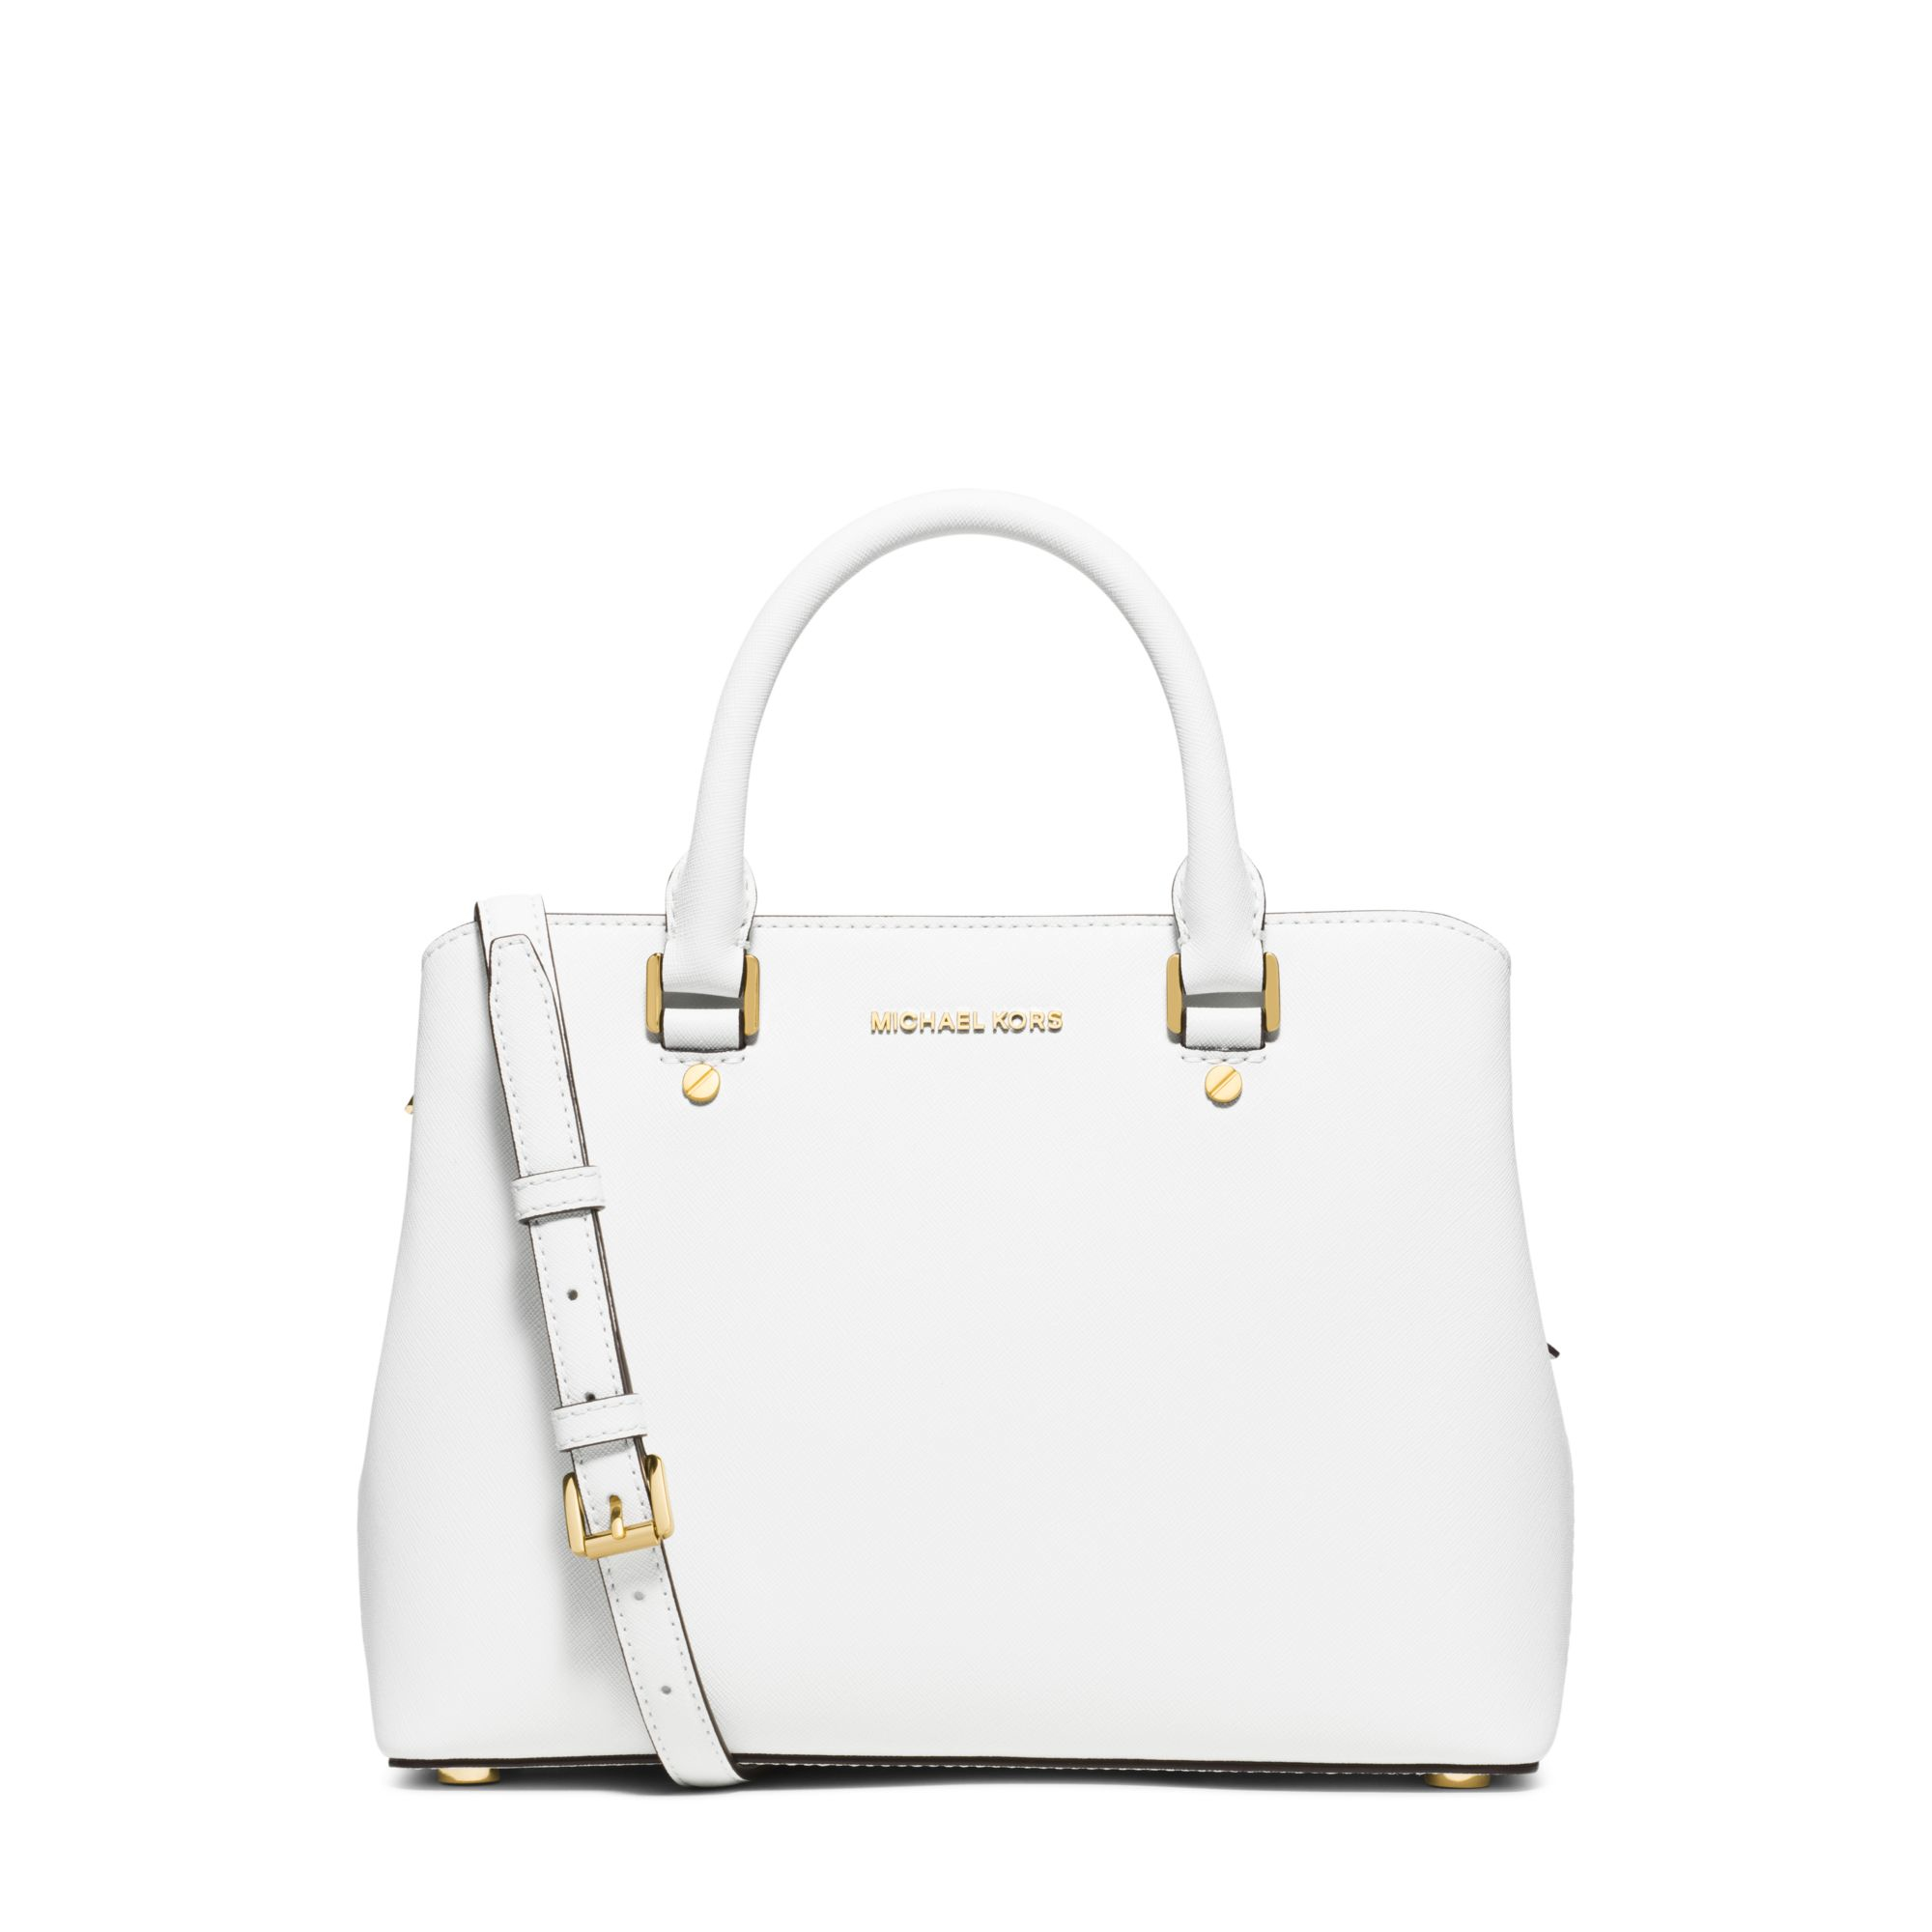 Michael Kors Laukut Pori : Michael kors savannah medium saffiano leather satchel in